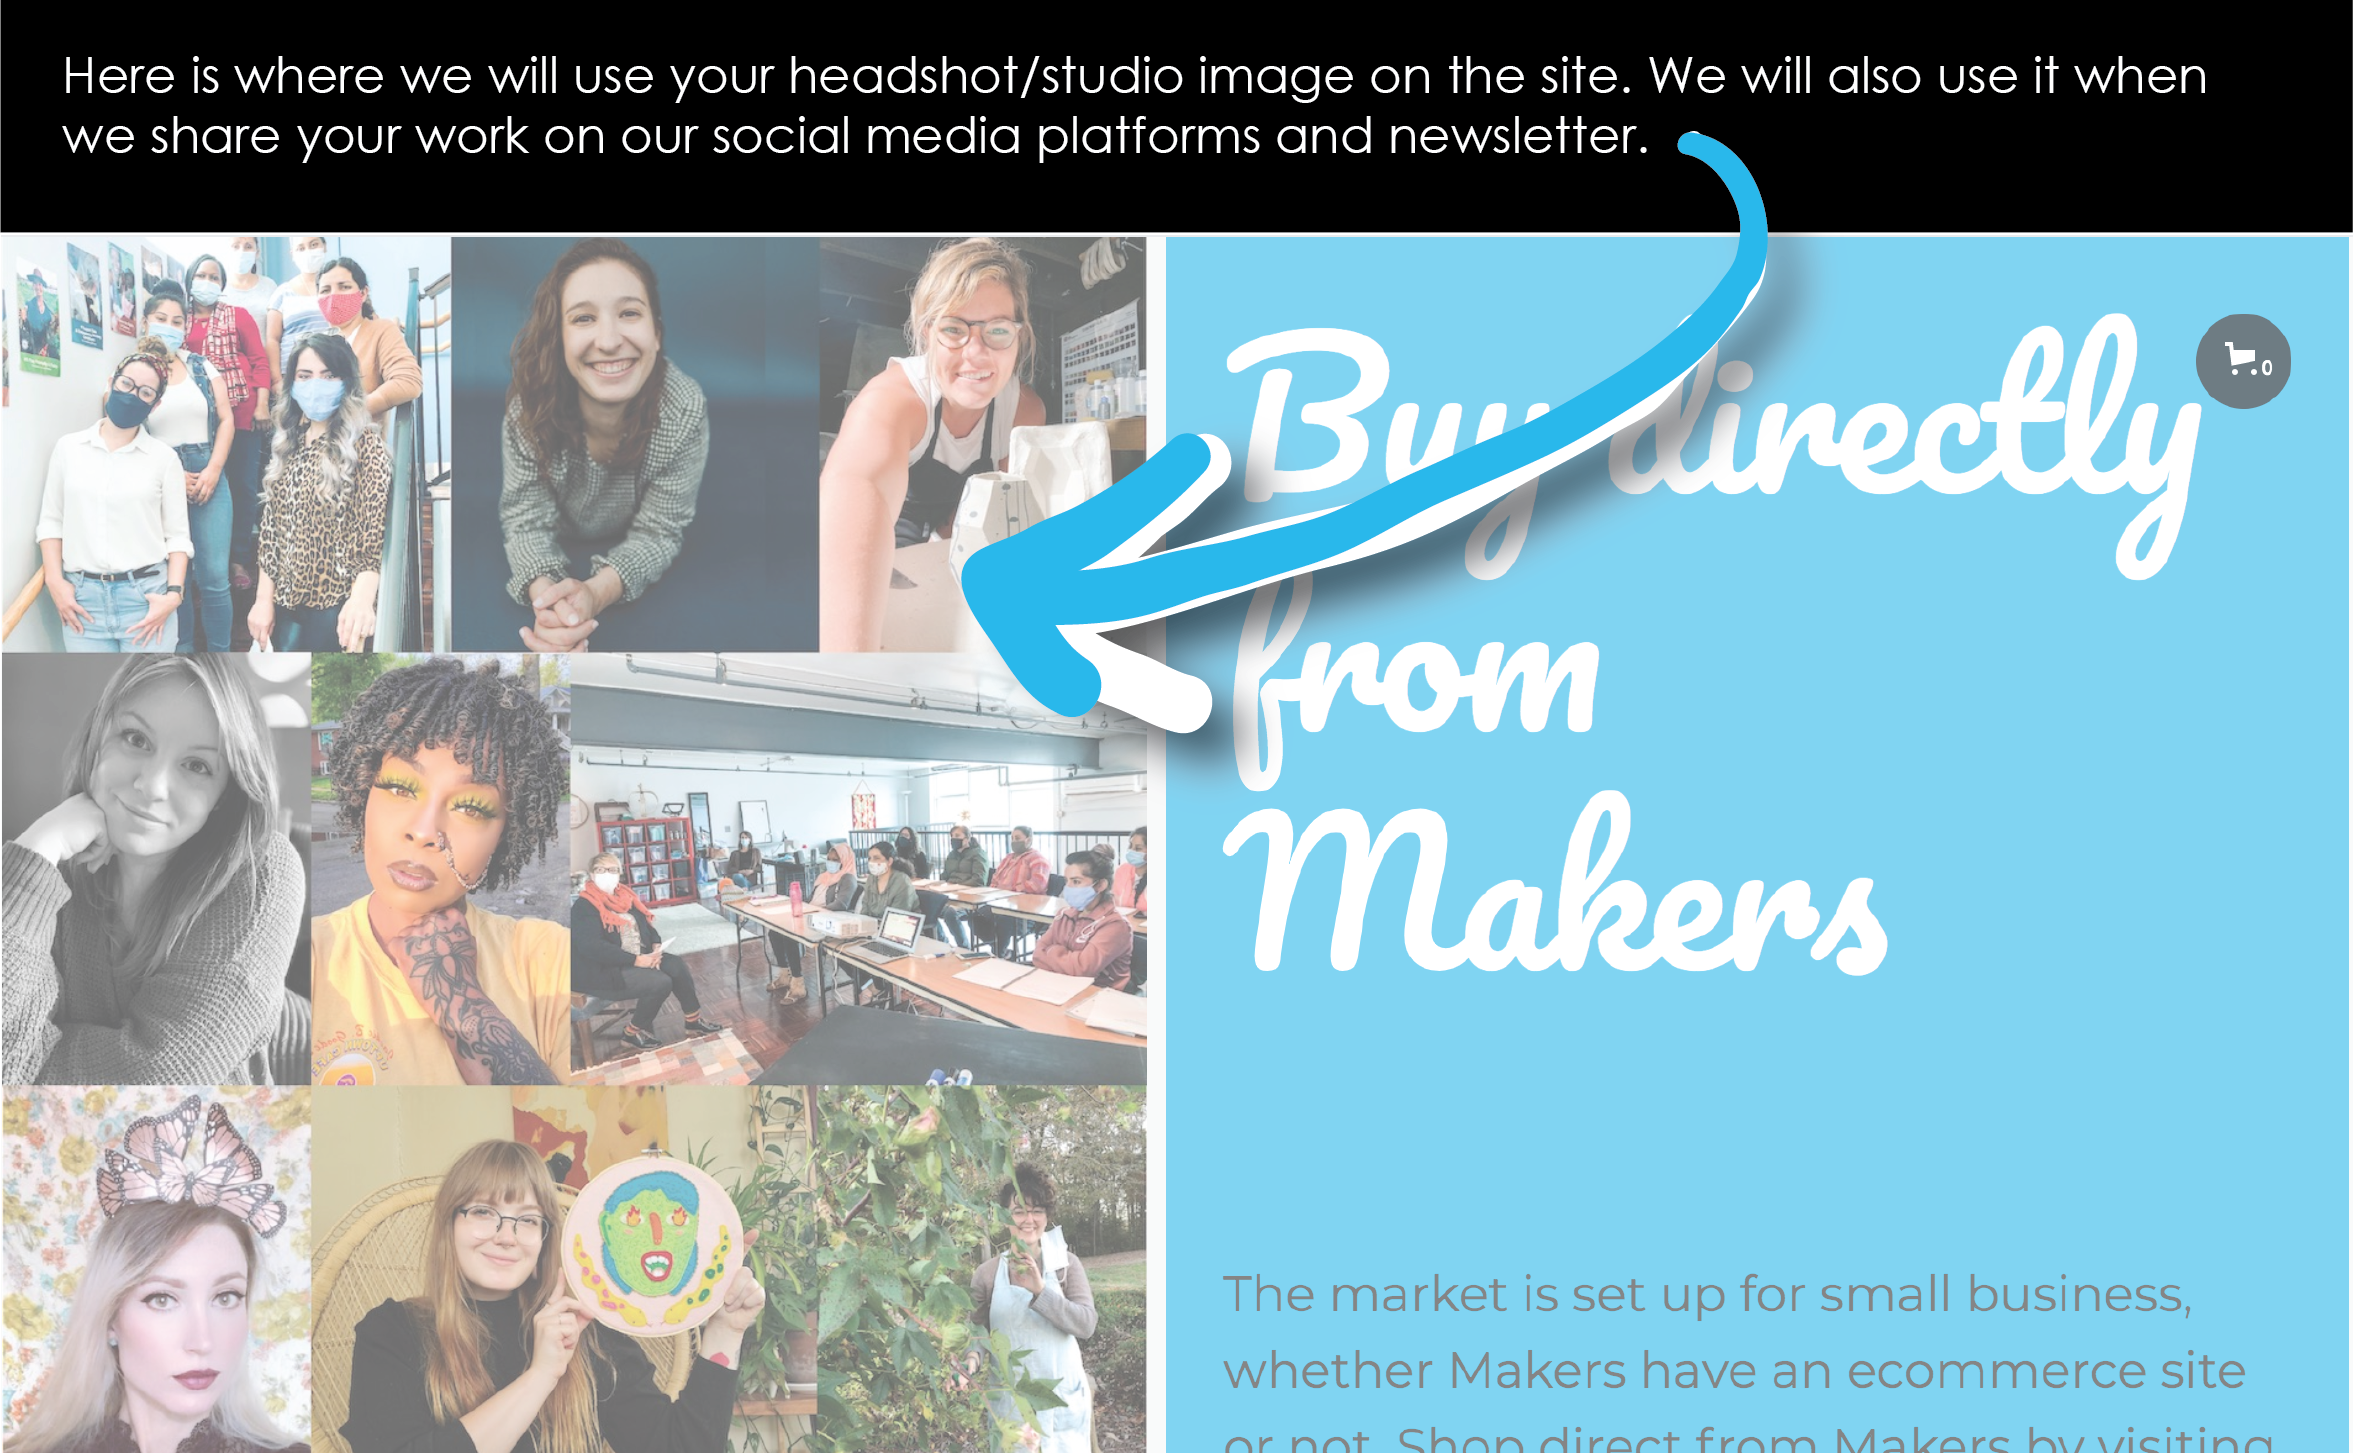 Screen shot shows the Makers Market home page featuring an introduction to all the makers on the left in a photo collage of their headshots with encouragement on right to get to know the local makers and buy their work.